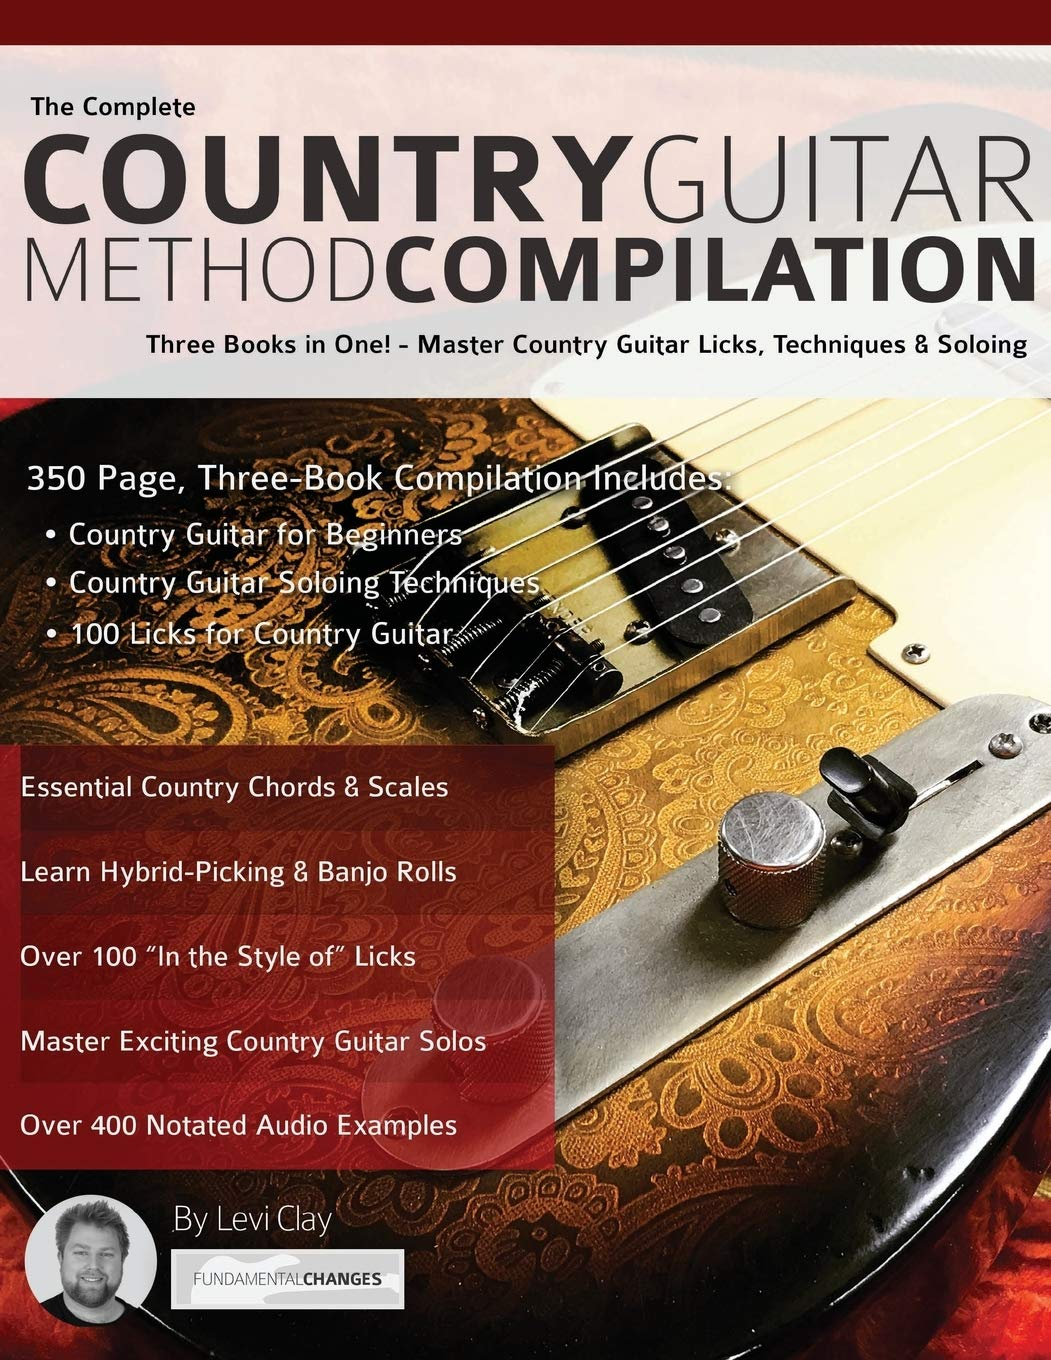 The Complete Country Guitar Method Compilation: Three Books in One! - Master Country Guitar Licks, Techniques & Soloing Learn Country Guitar: Amazon.es: Clay, Mr Levi, Alexander, Mr Joseph: Libros en idiomas extranjeros